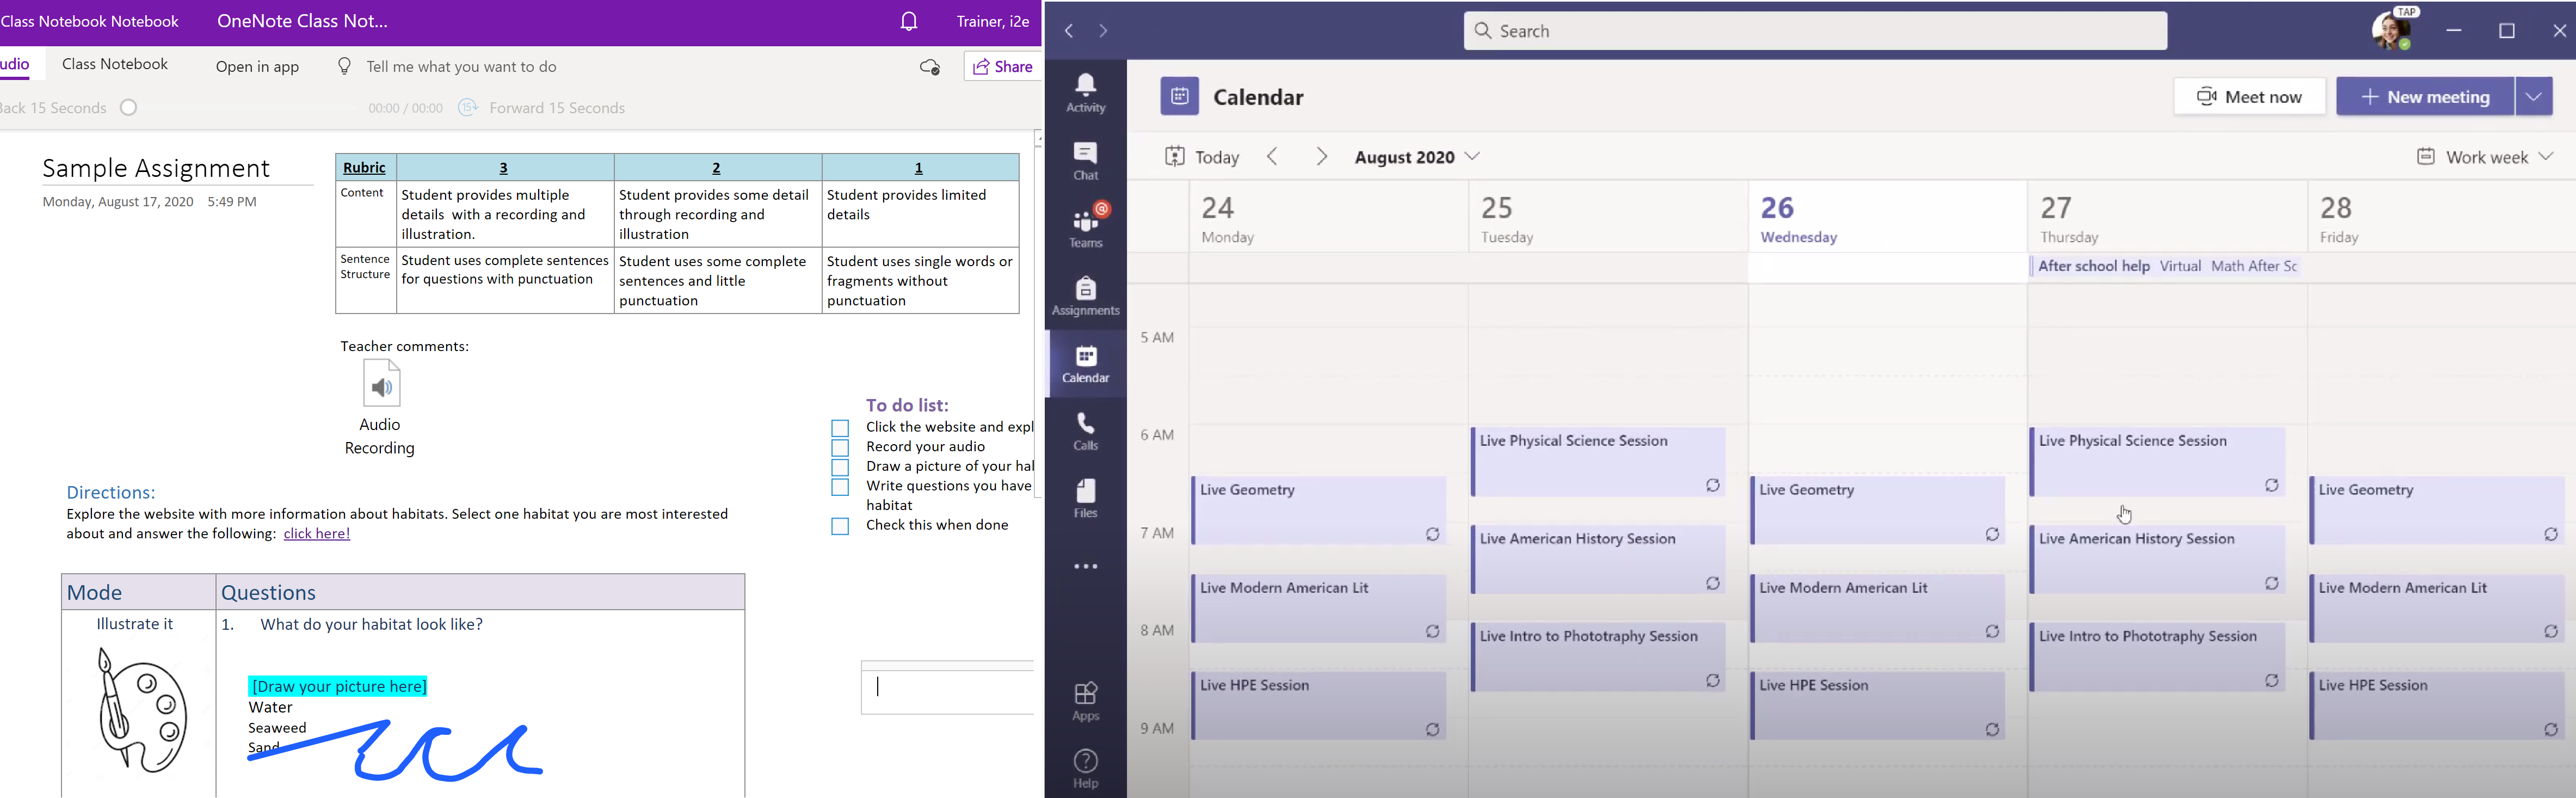 OneNote and Teams view